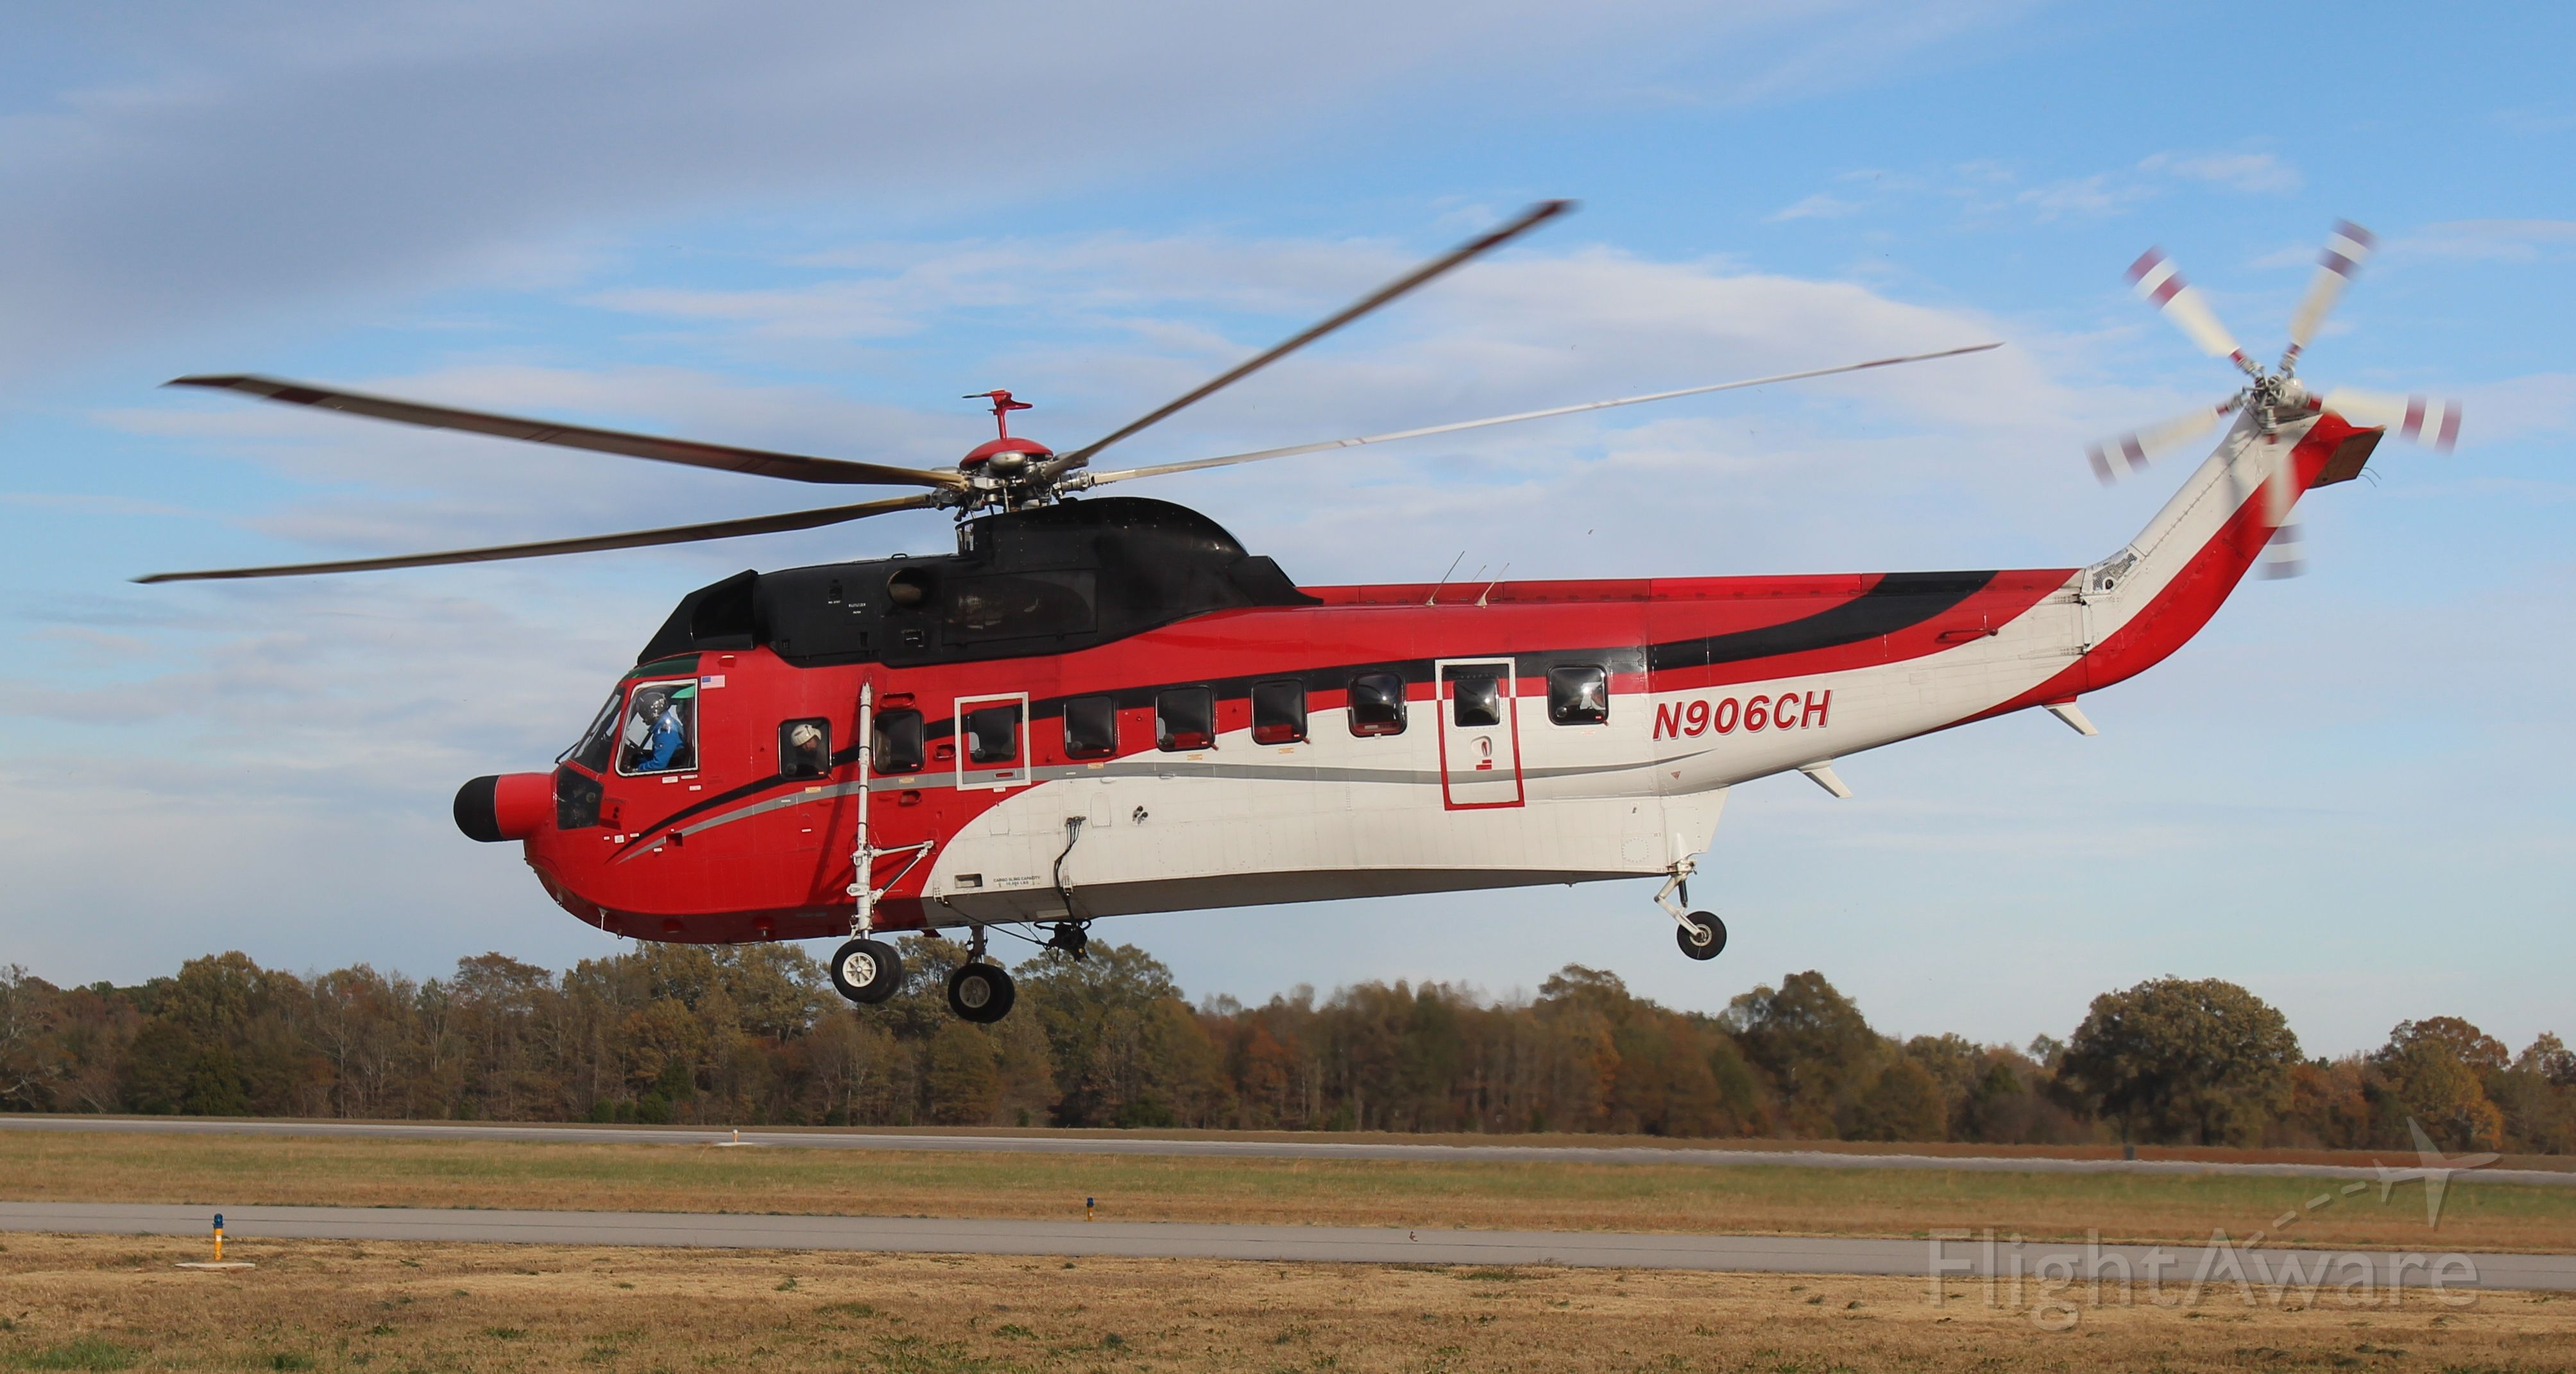 Sikorsky Sea King (N906CH) - Construction Helicopters Sikorsky S-61N Sea King departing Pryor Regional Airport, Decatur, AL - late in the afternoon of November 15, 2019.